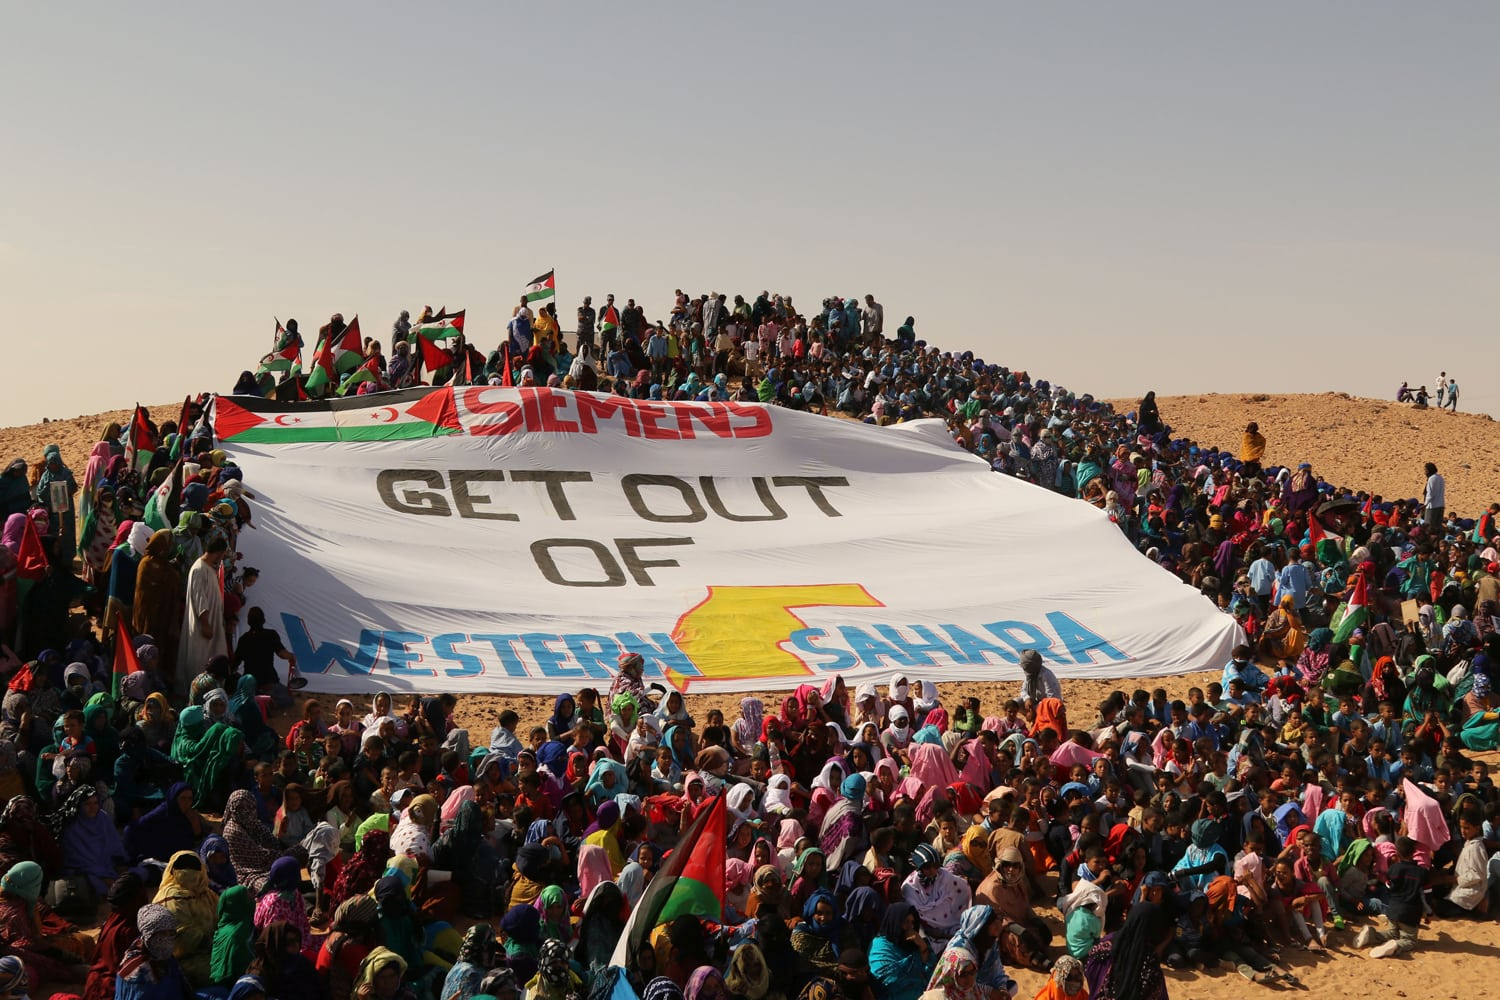 Many Sahrawis stand around a huge flag with the inscription: Siemens get out of Western Sahara.